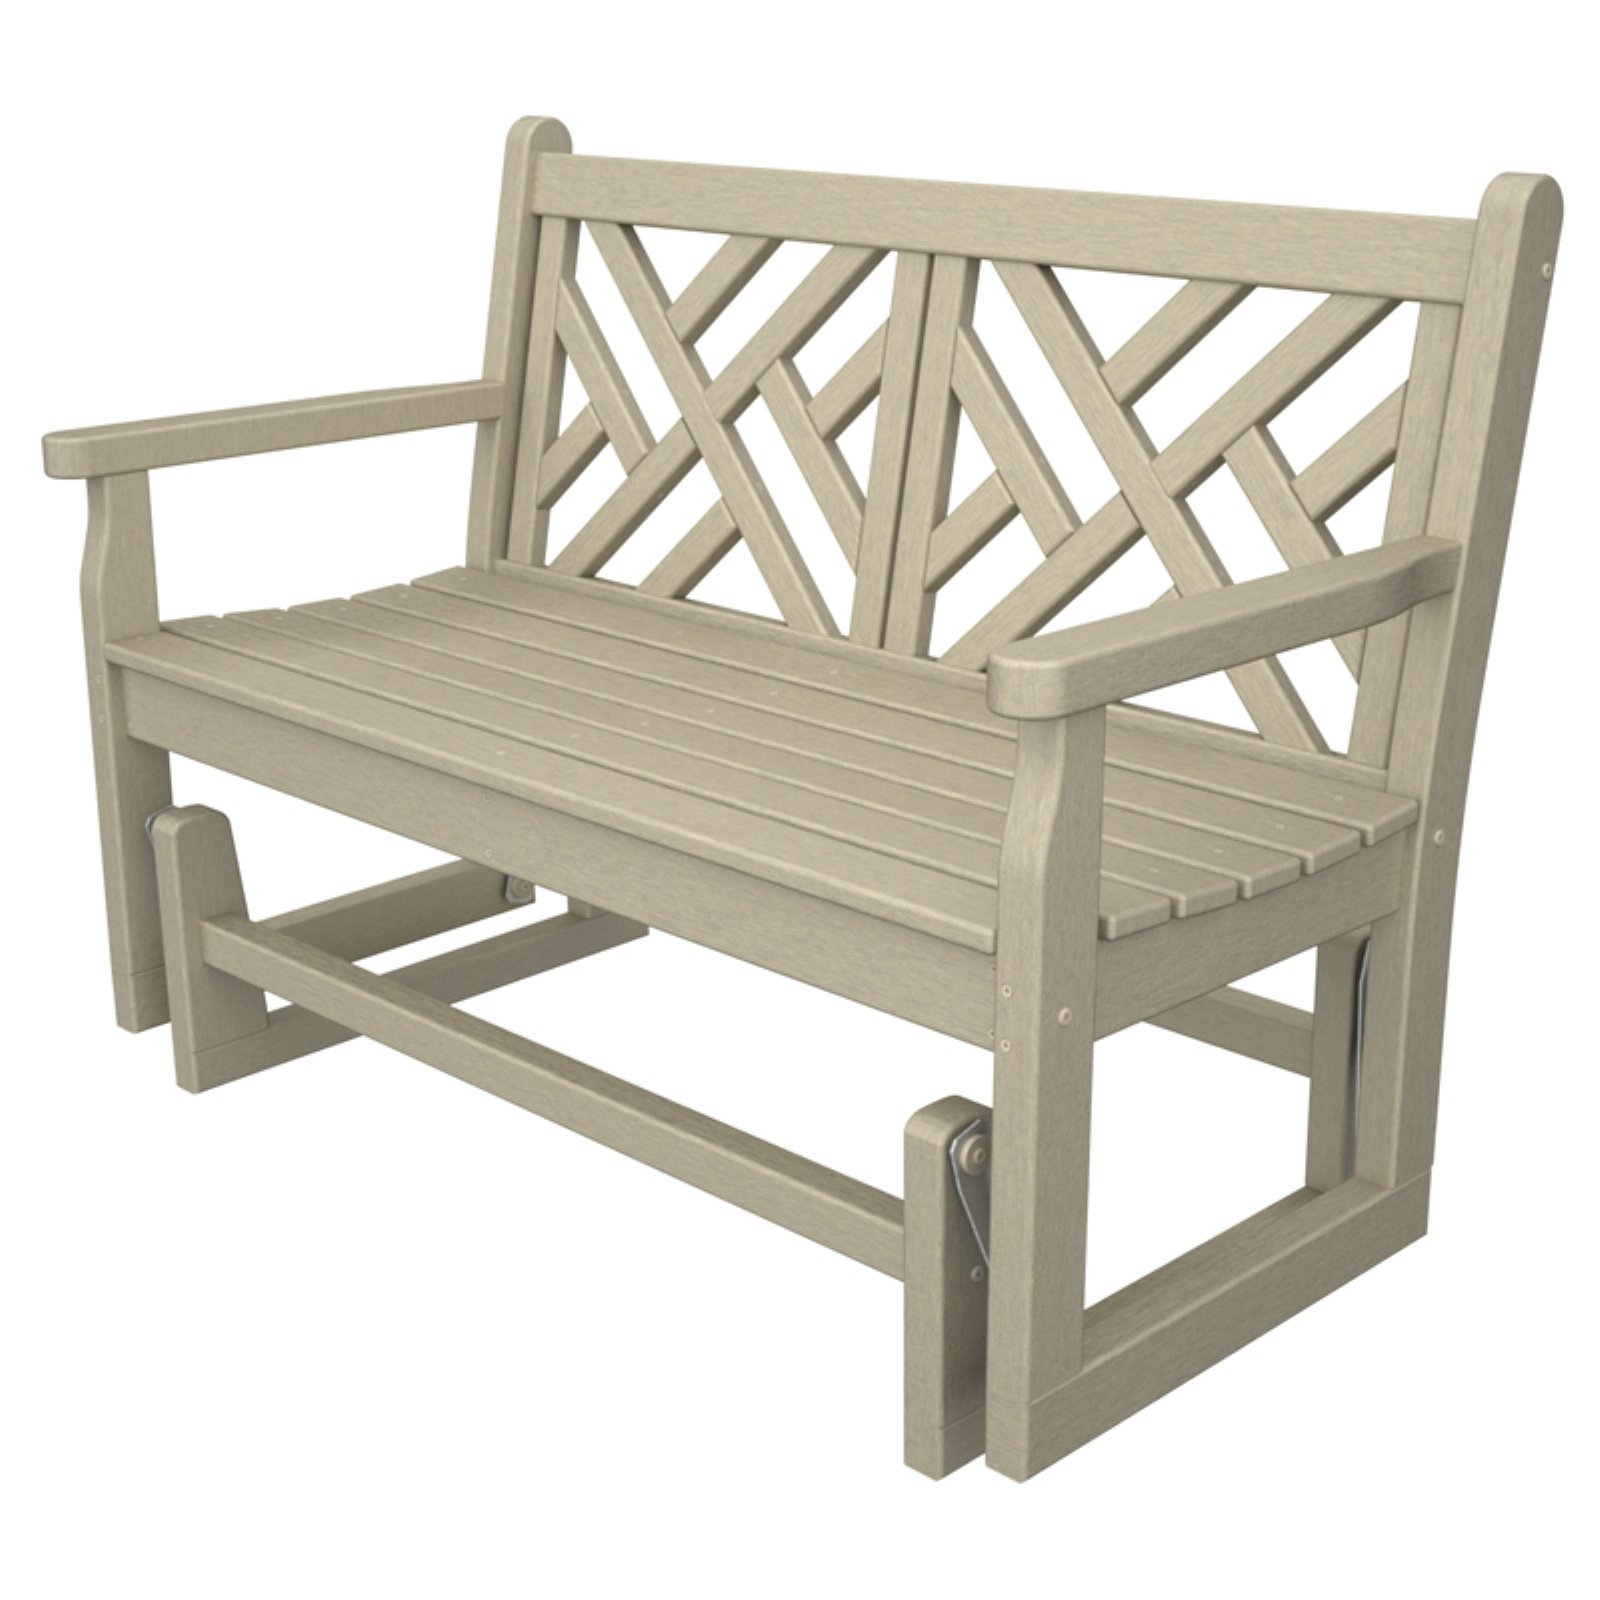 POLYWOOD® Chippendale 4 ft. Recycled Plastic Outdoor Glider Loveseat